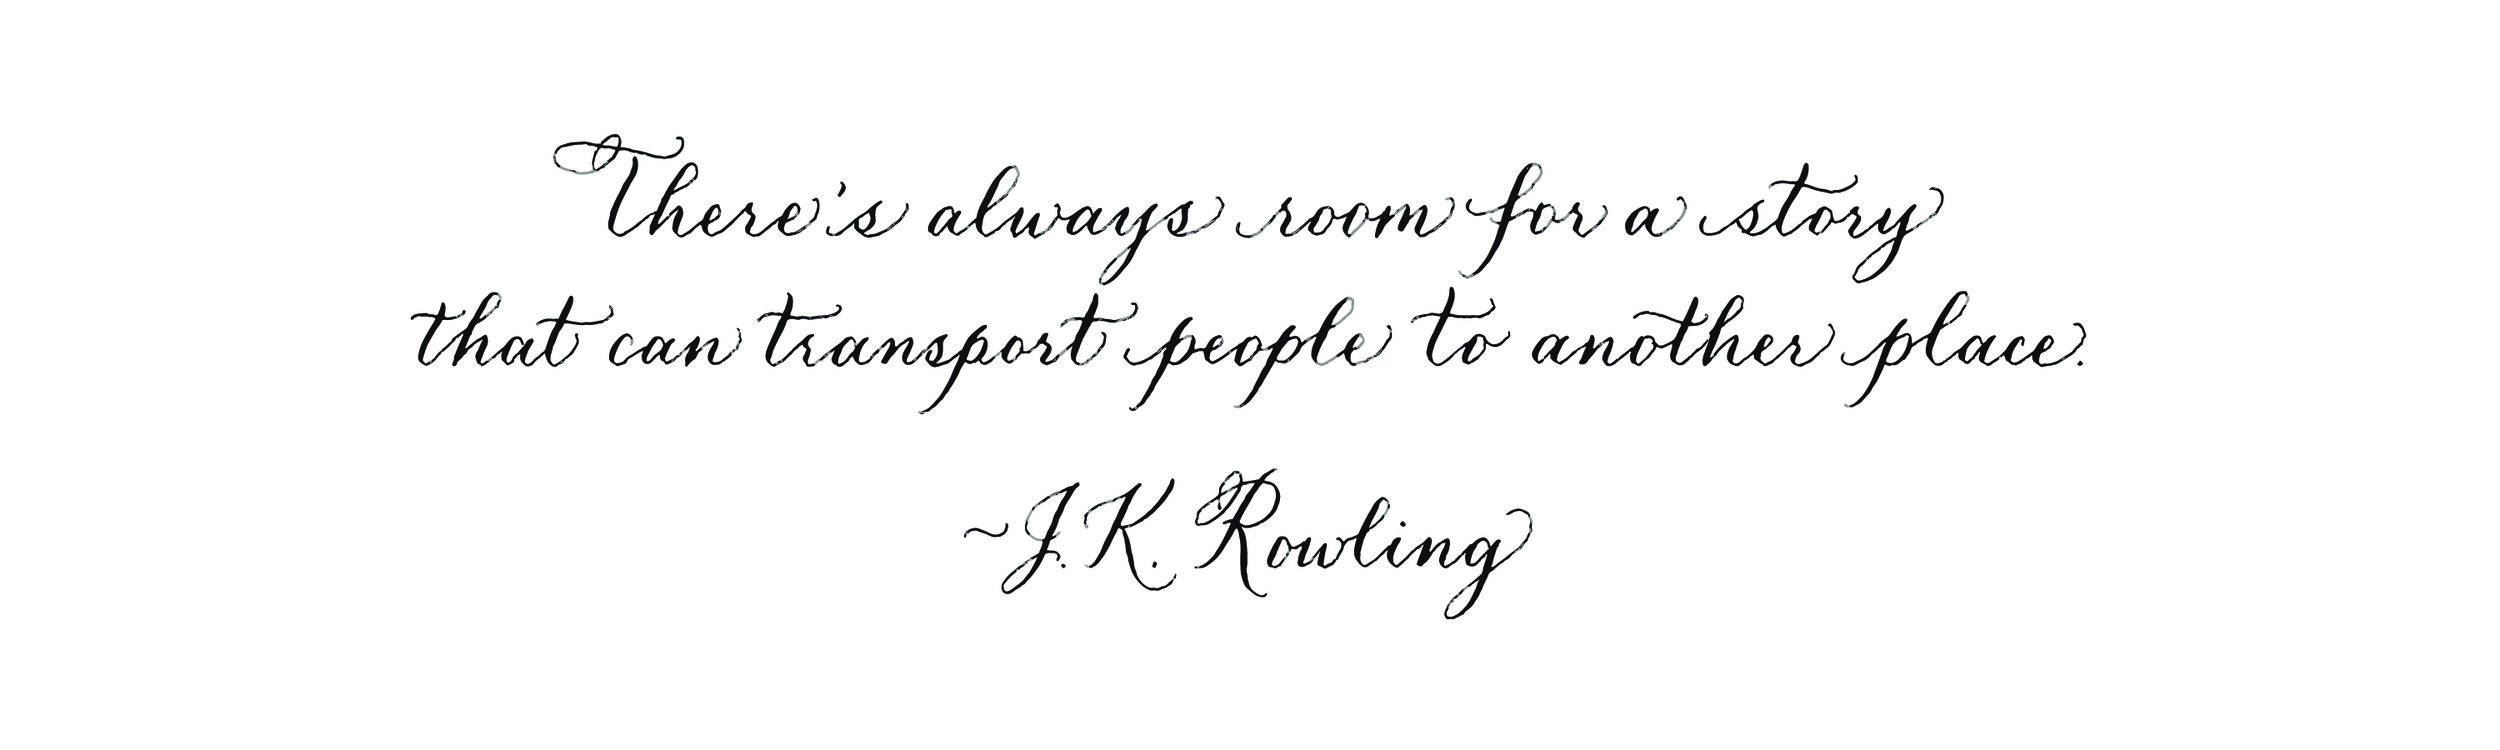 JK Rowling Quote-01.jpg